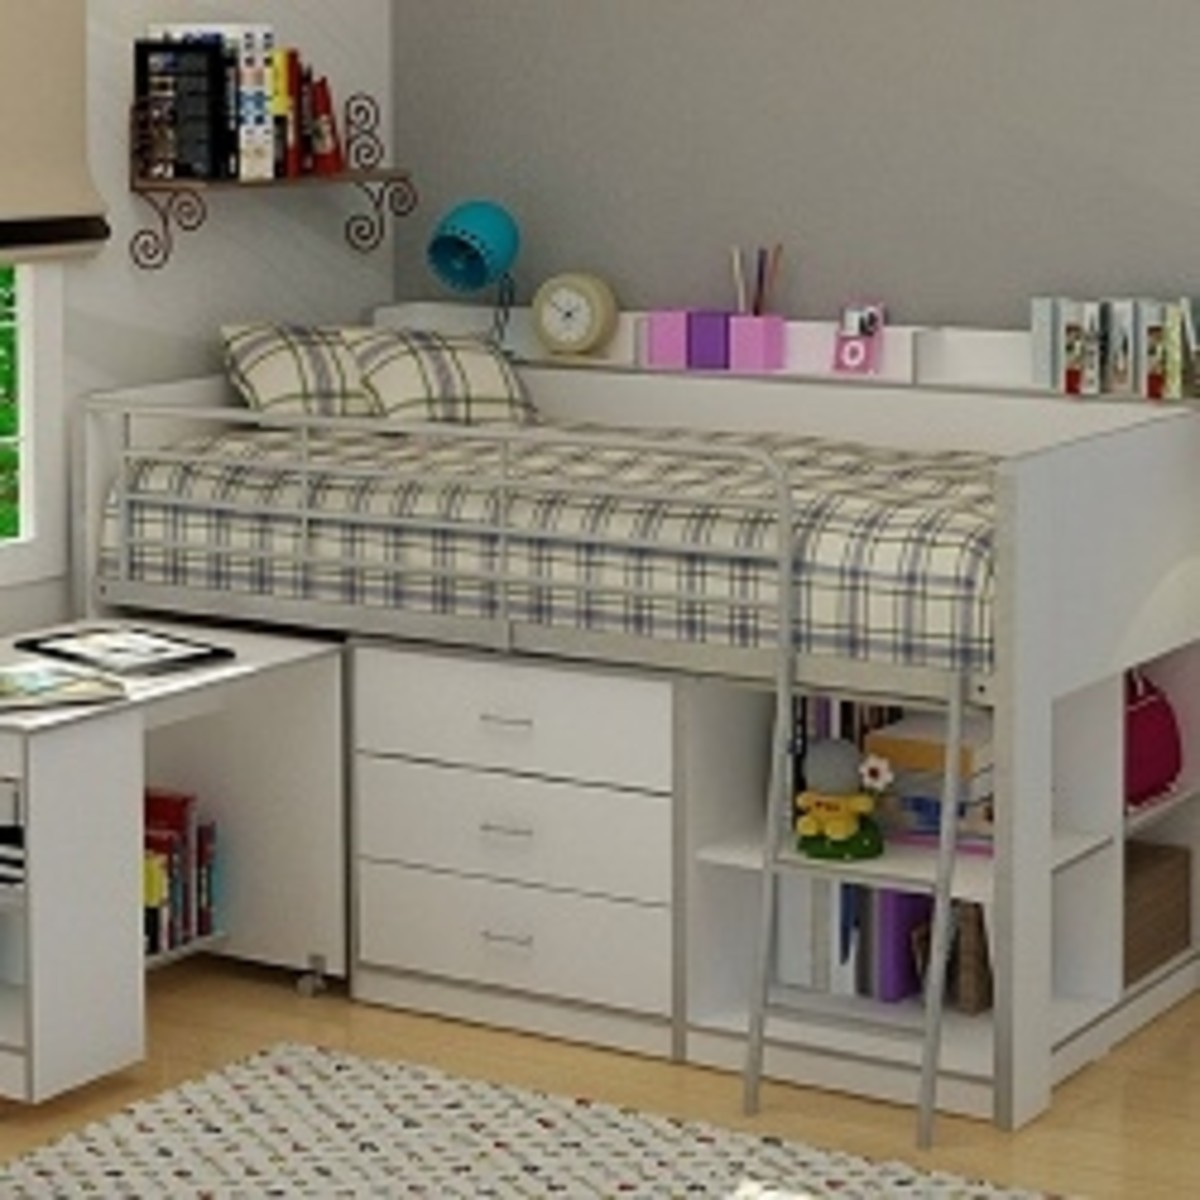 loft-bed-with-storage-and-desk